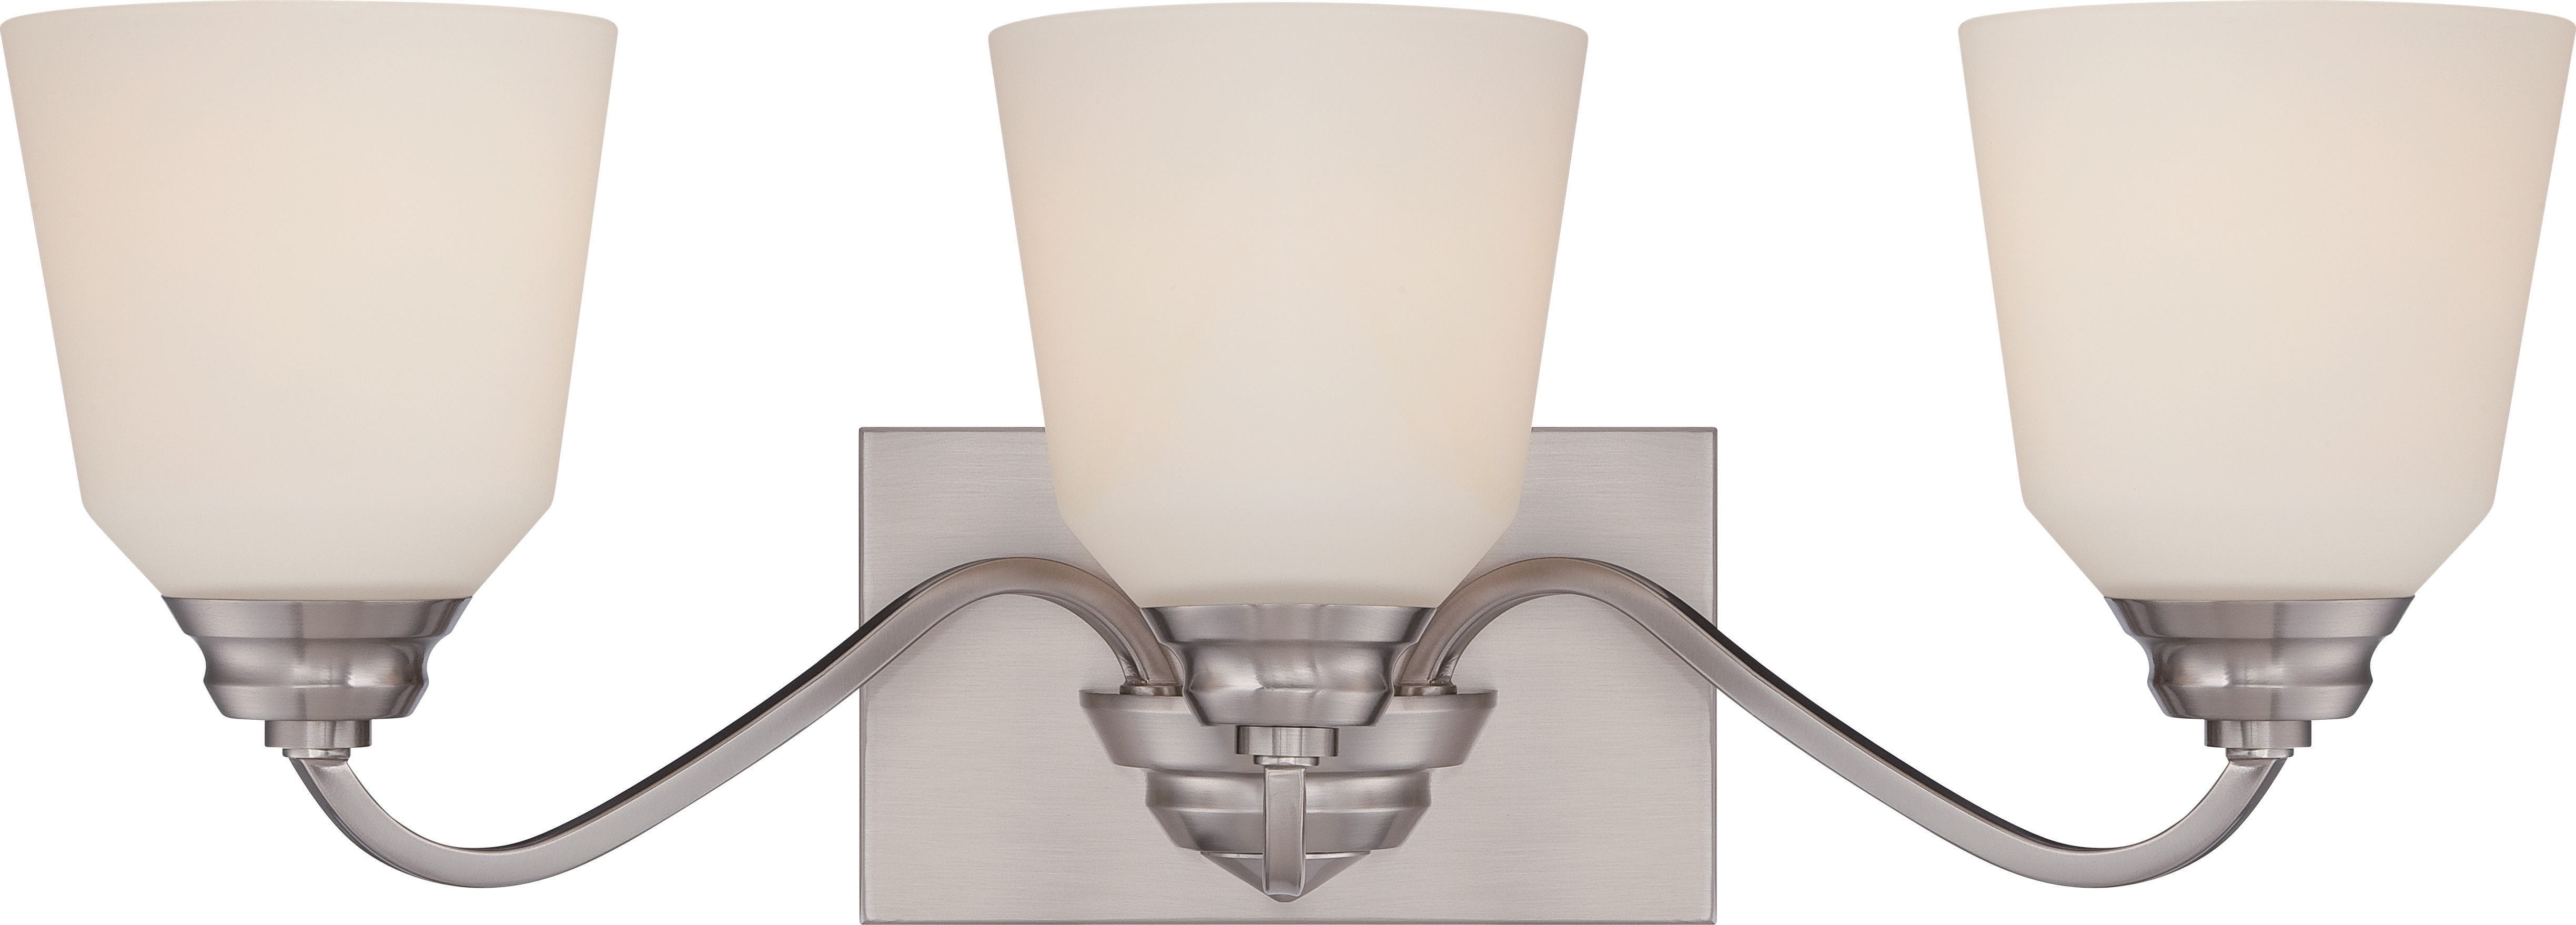 3 Light Vanity Fixture With Satin White